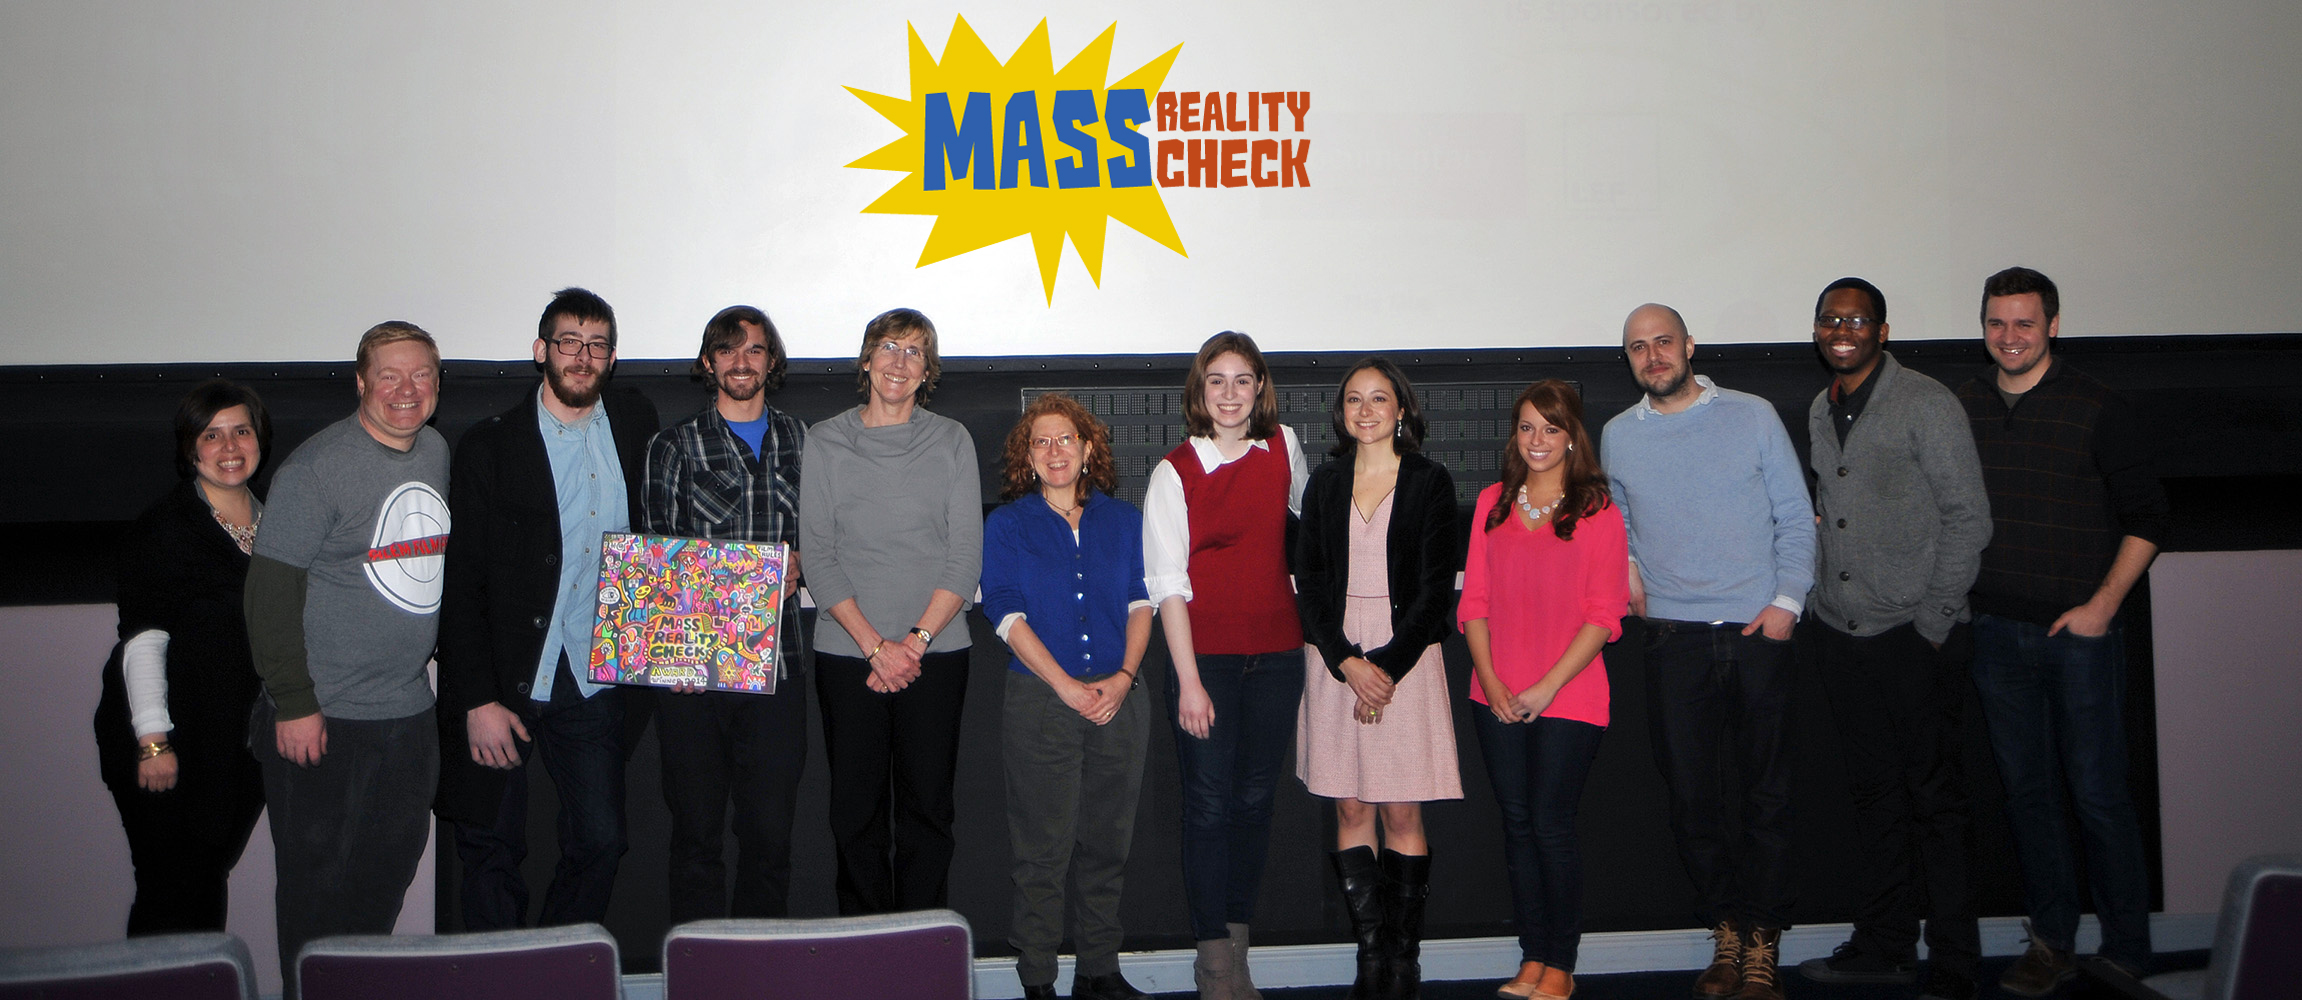 mass reality check  awards 3-2mrc